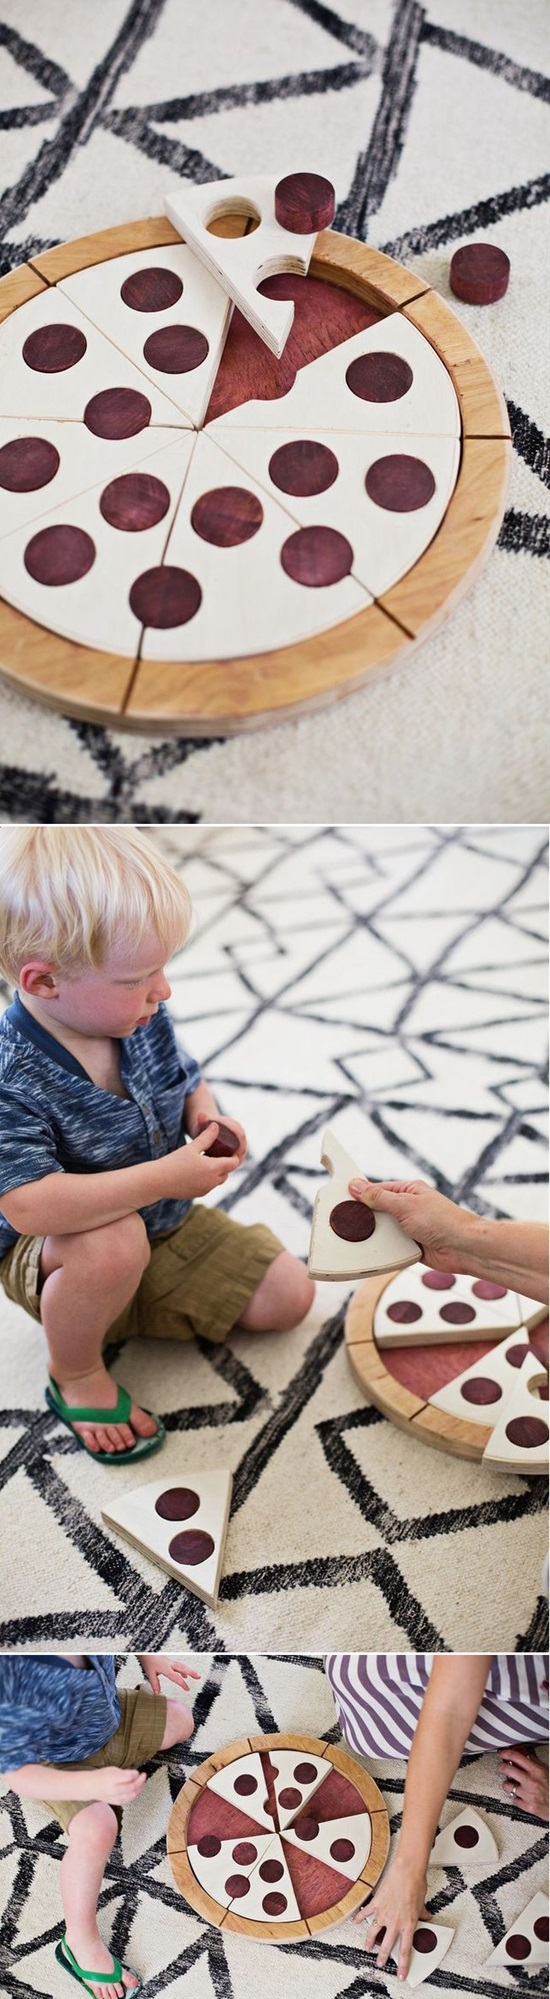 20 Amazing DIY Wooden Toys That You Can Actually Make